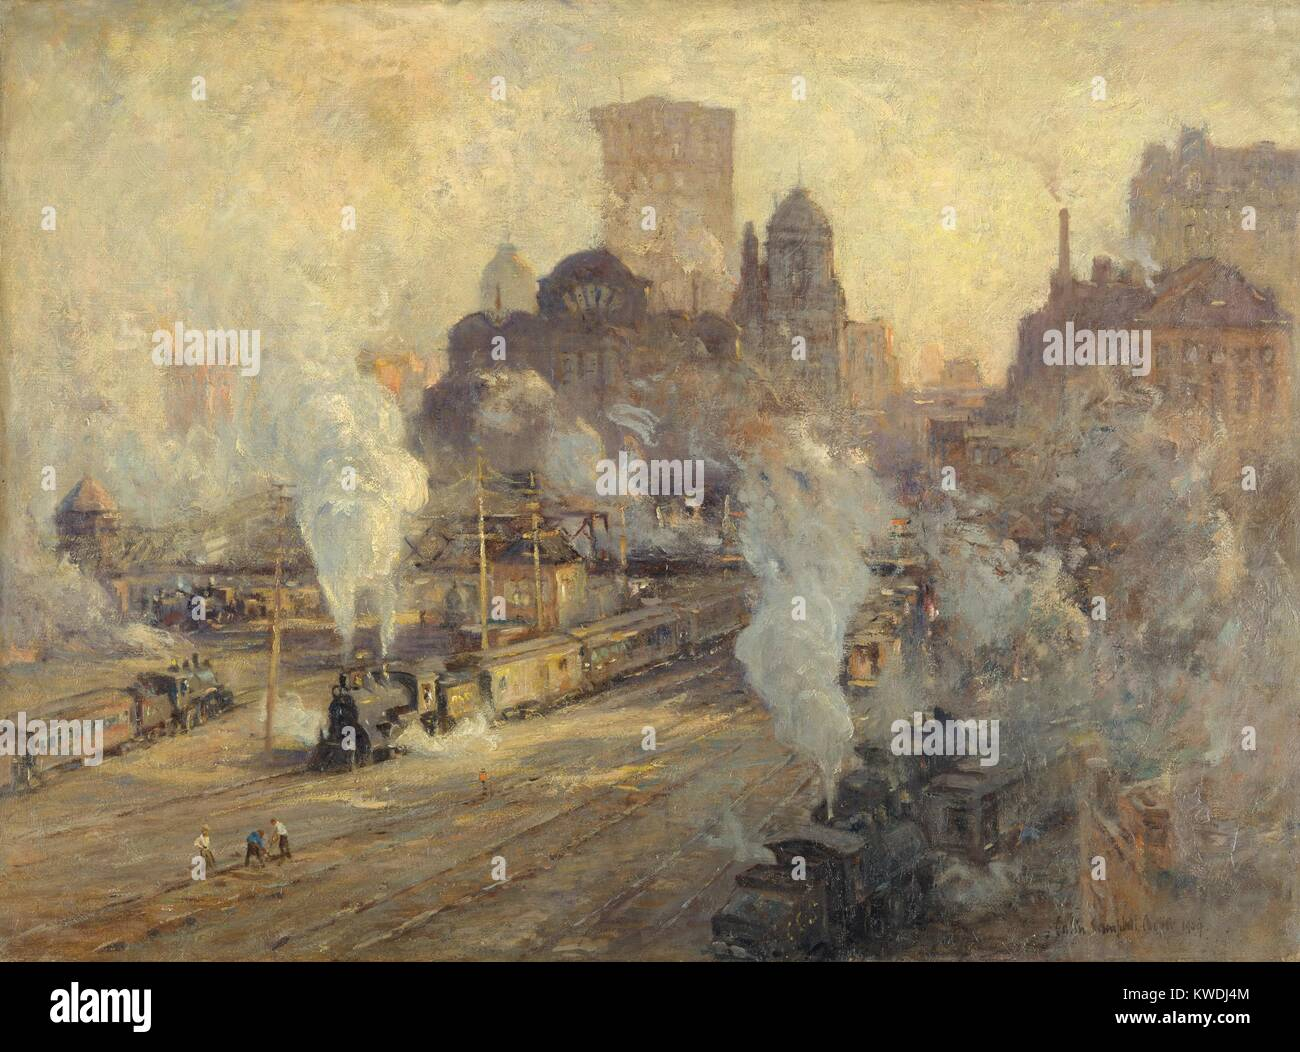 GRAND CENTRAL TERMINAL, by Colin Campbell Cooper, 1909, American painting, oil on canvas. The train yard of Grand - Stock Image